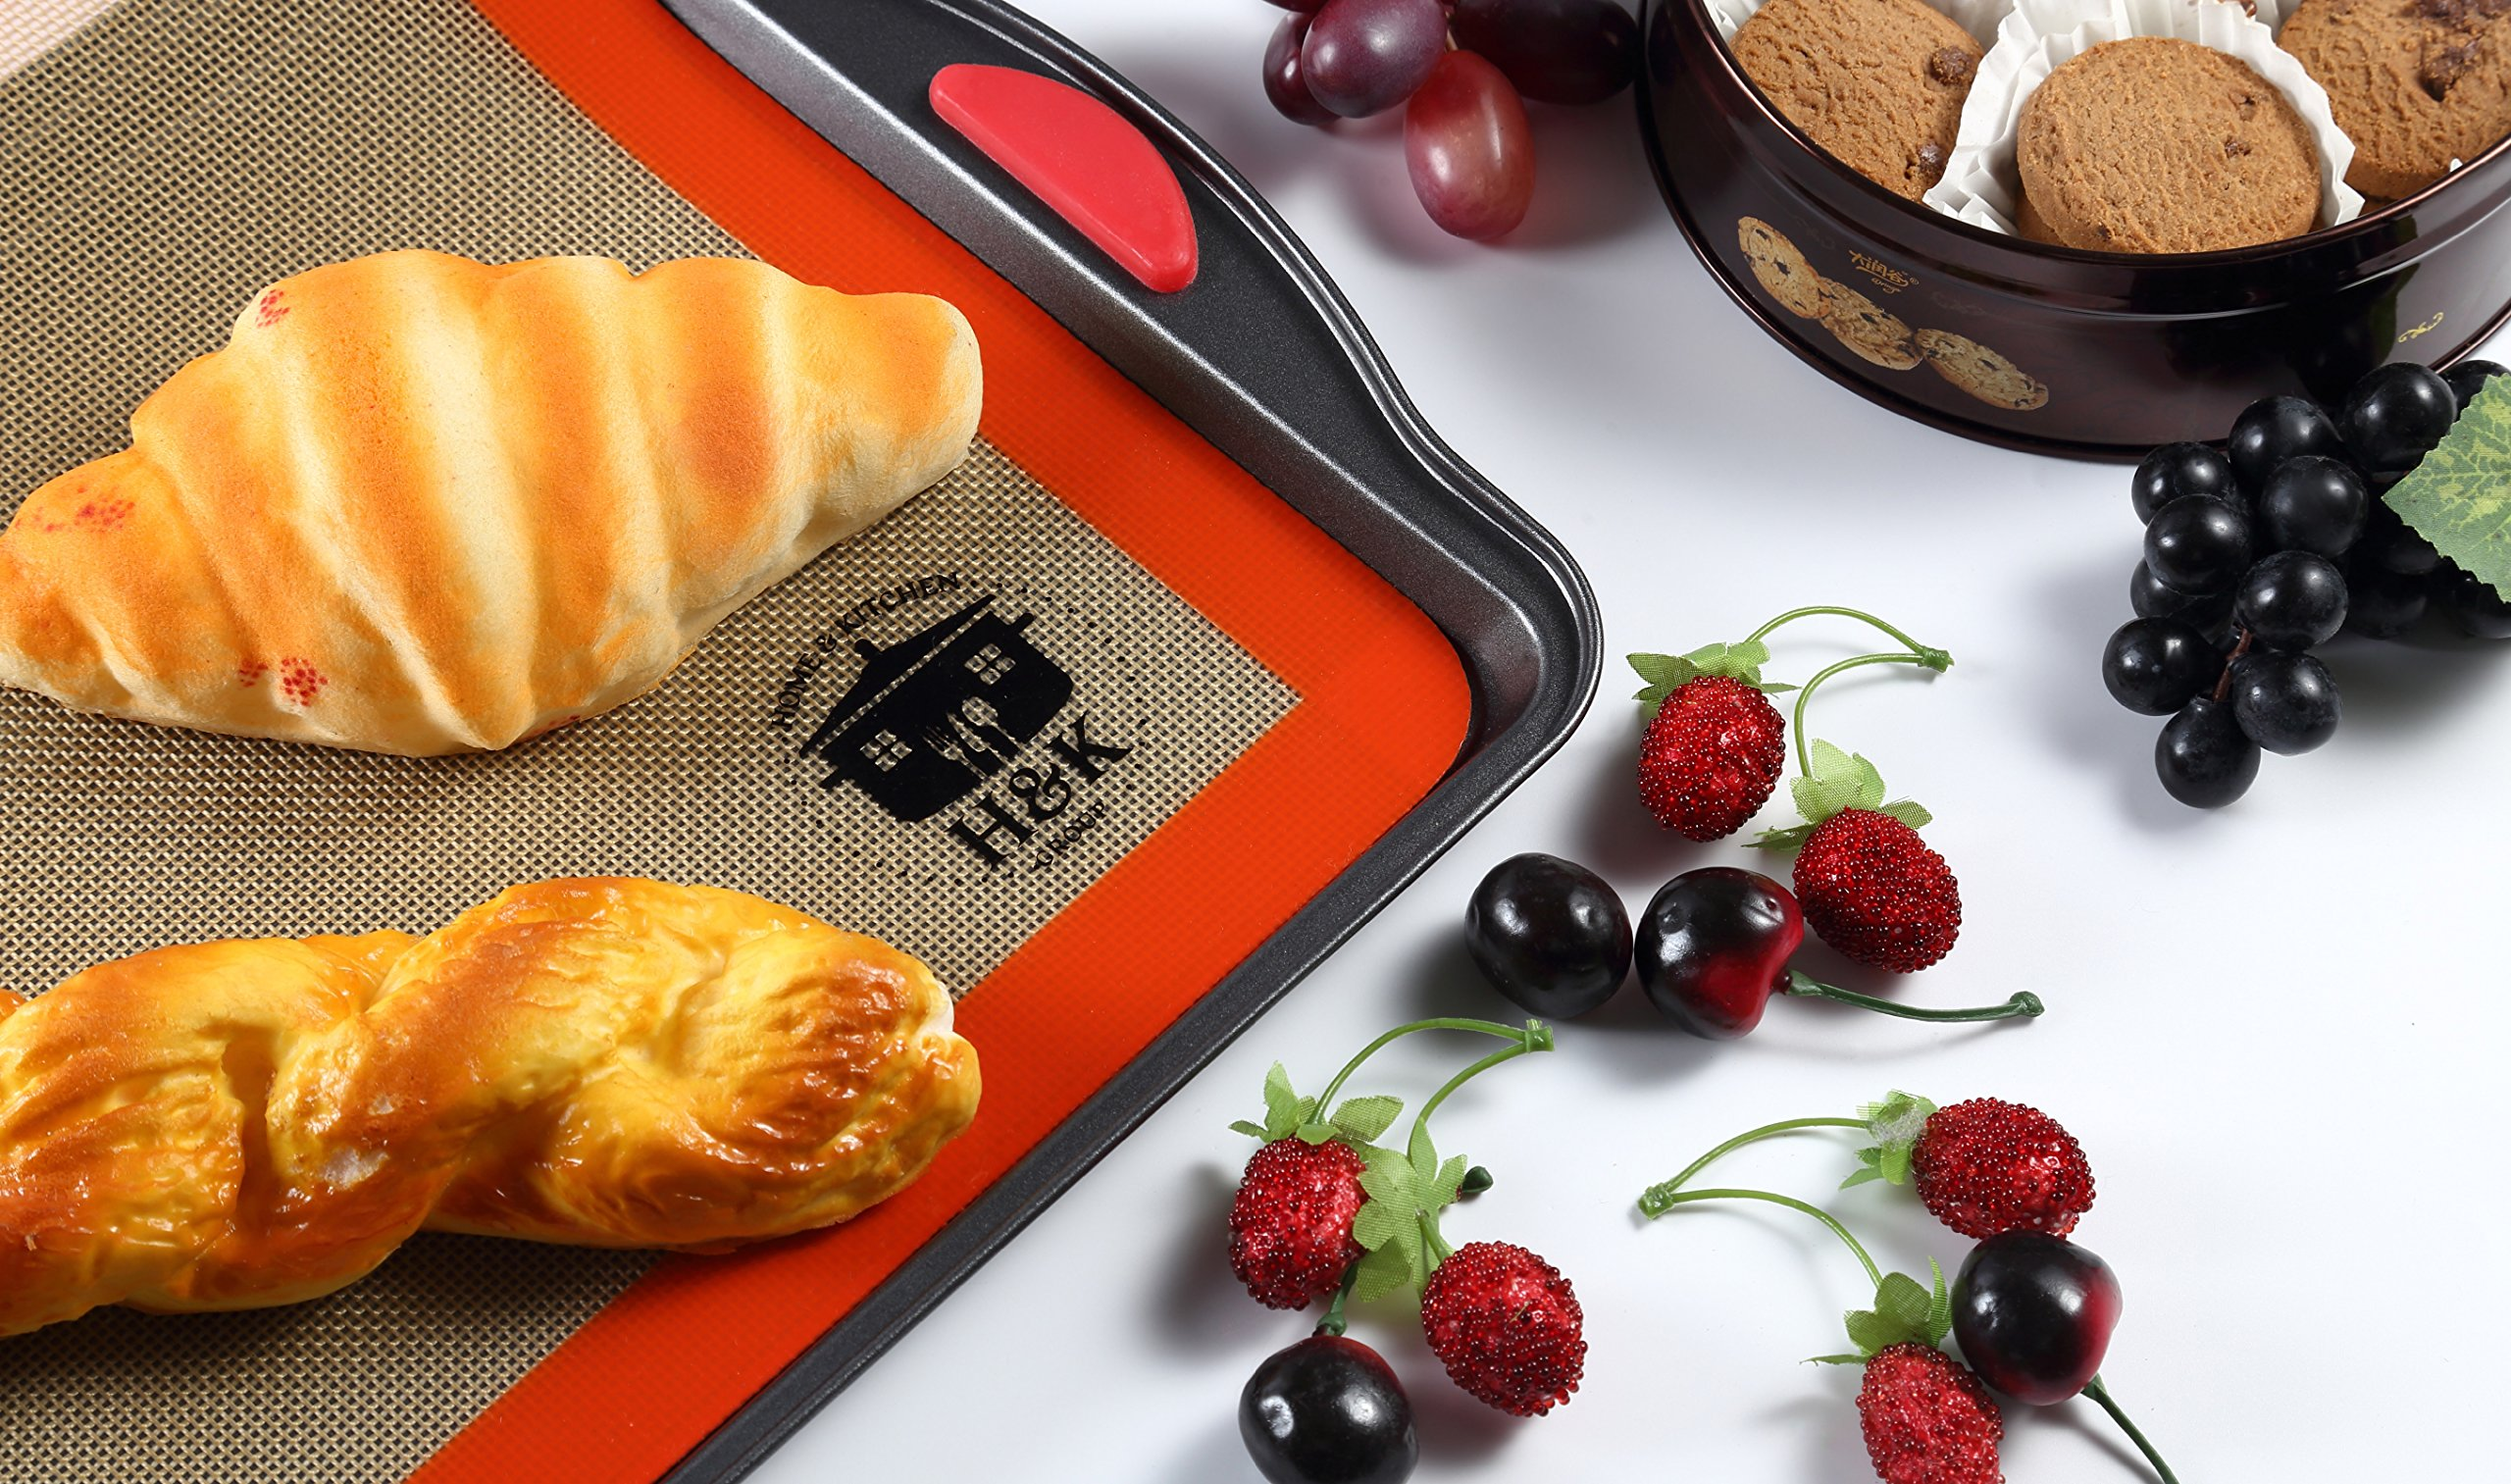 Home and Kitchen Group's Professional Grade Nonstick Silicone Baking Mat cum Tray Liners - Set of 2 - Kitchen Mat - Dishwasher and Oven Safe - FDA approved Environment Friendly Material